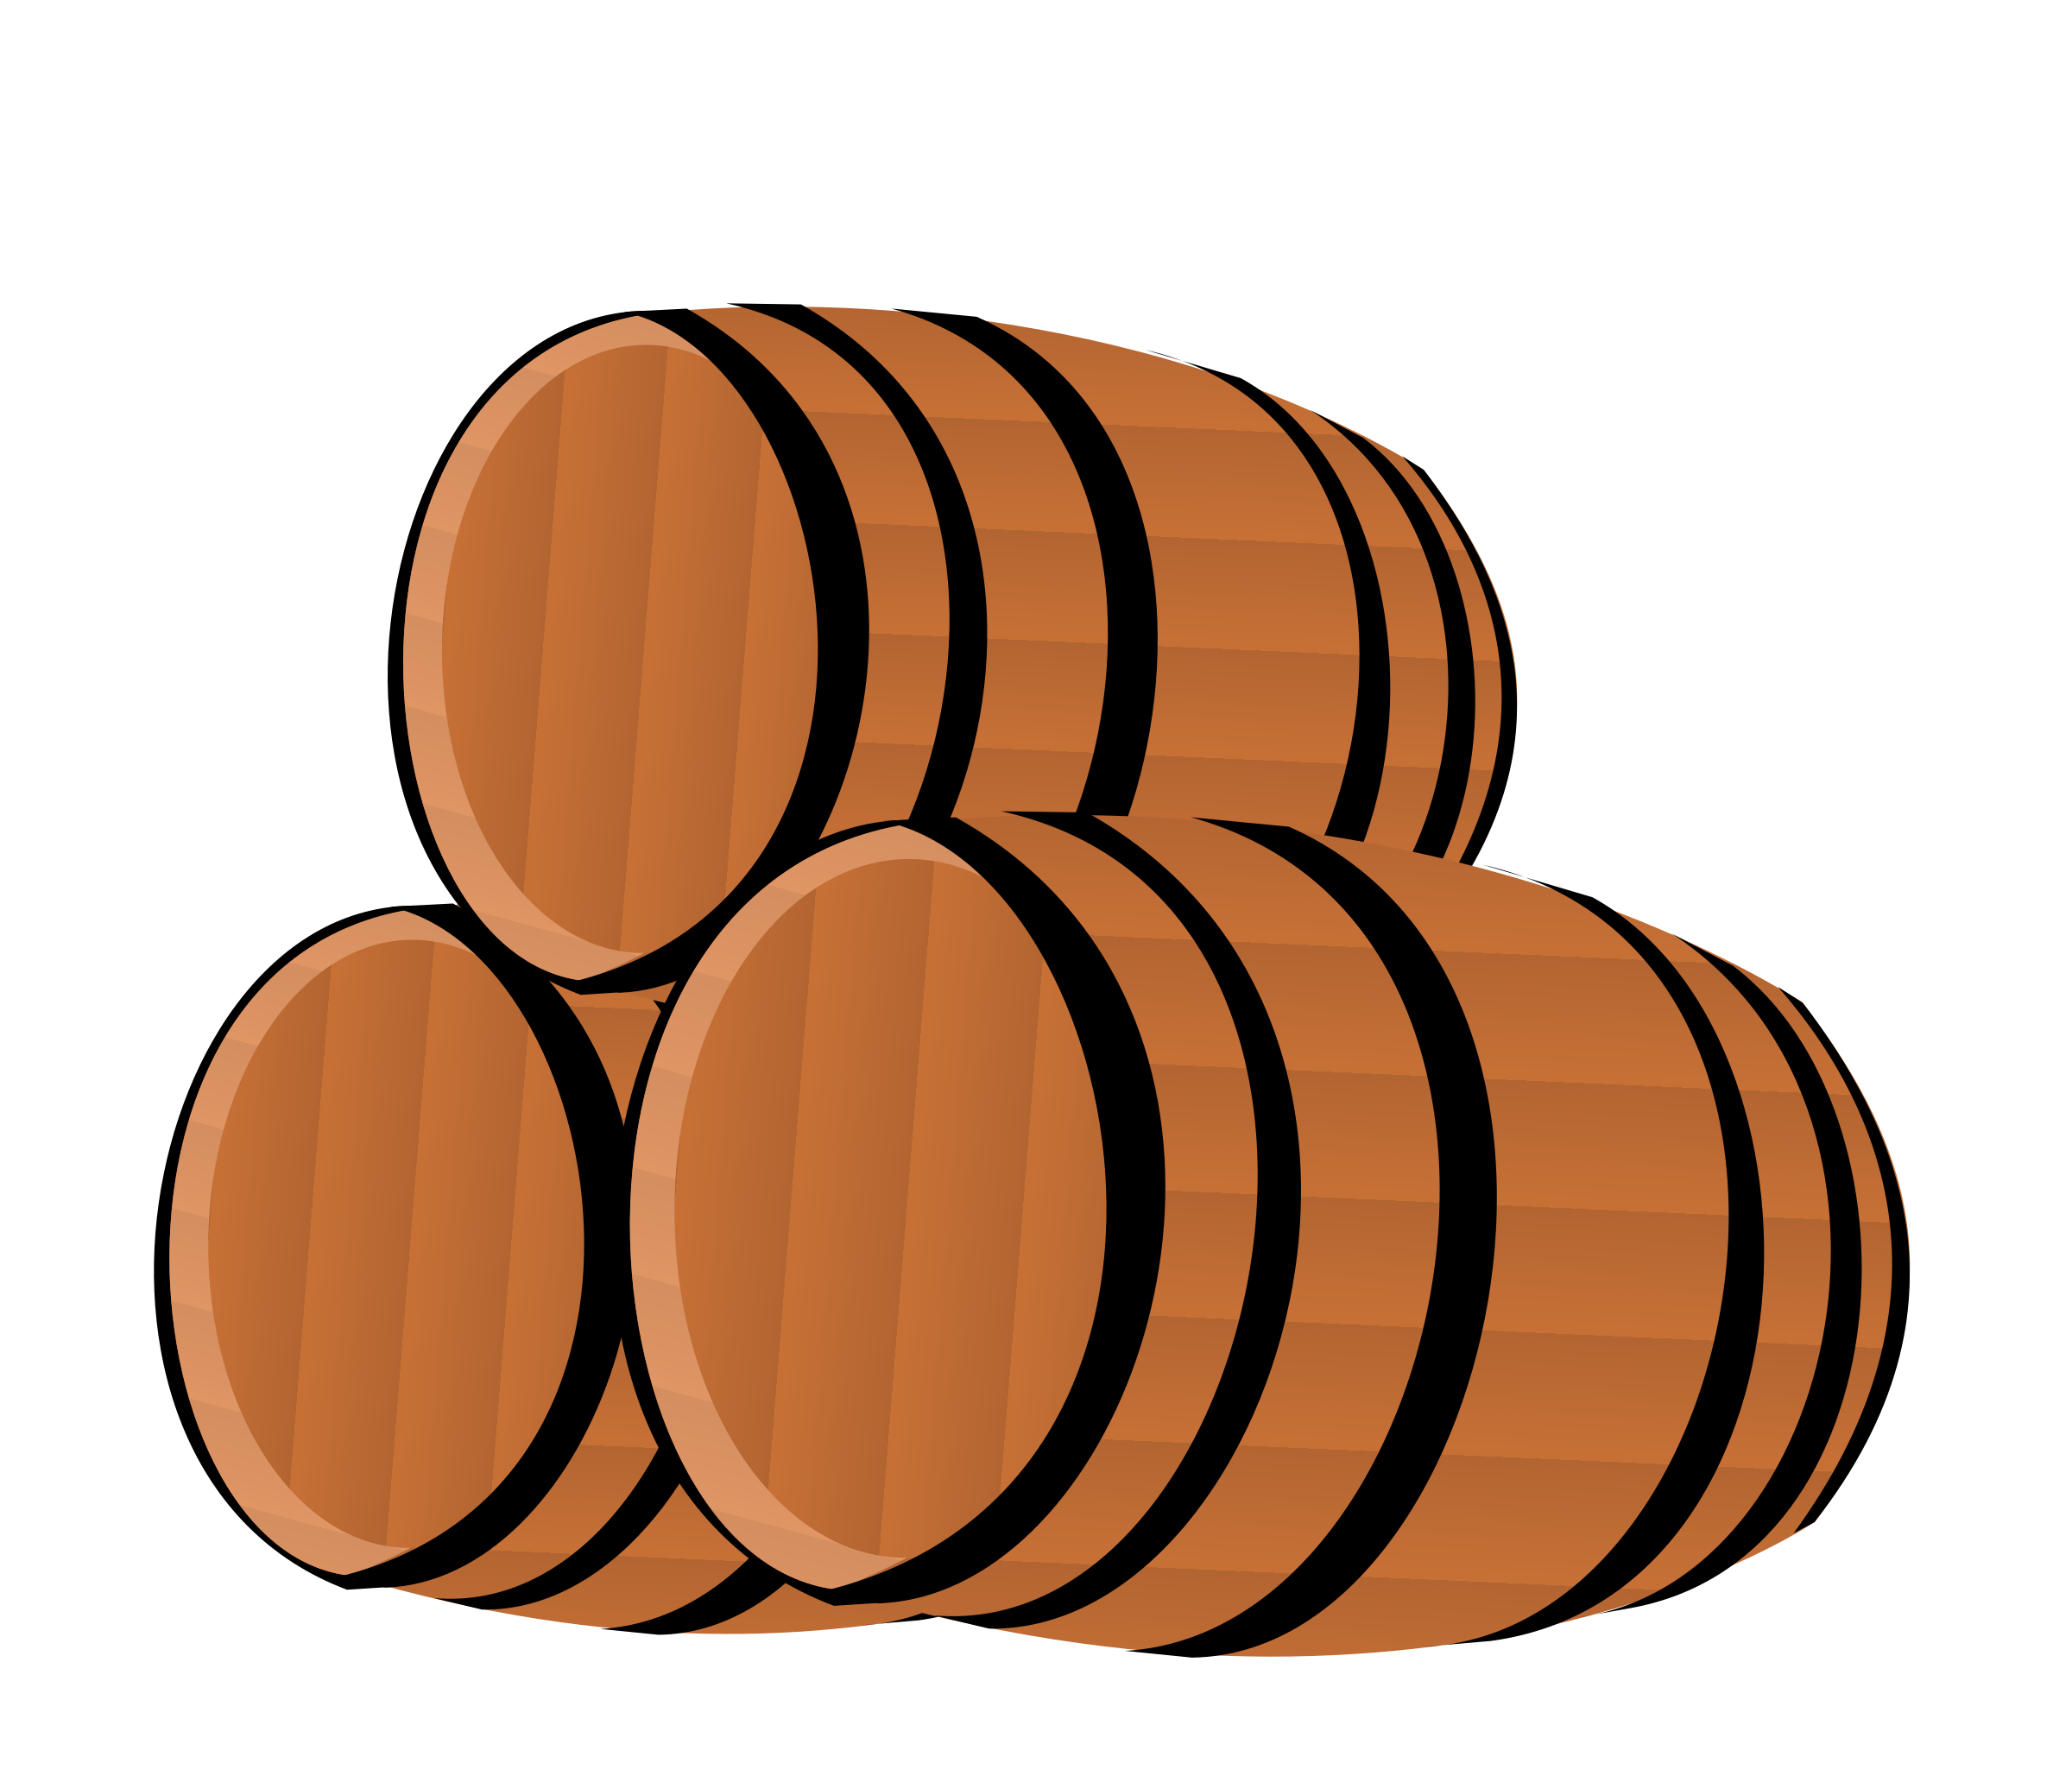 Pirate clipart barrel #12